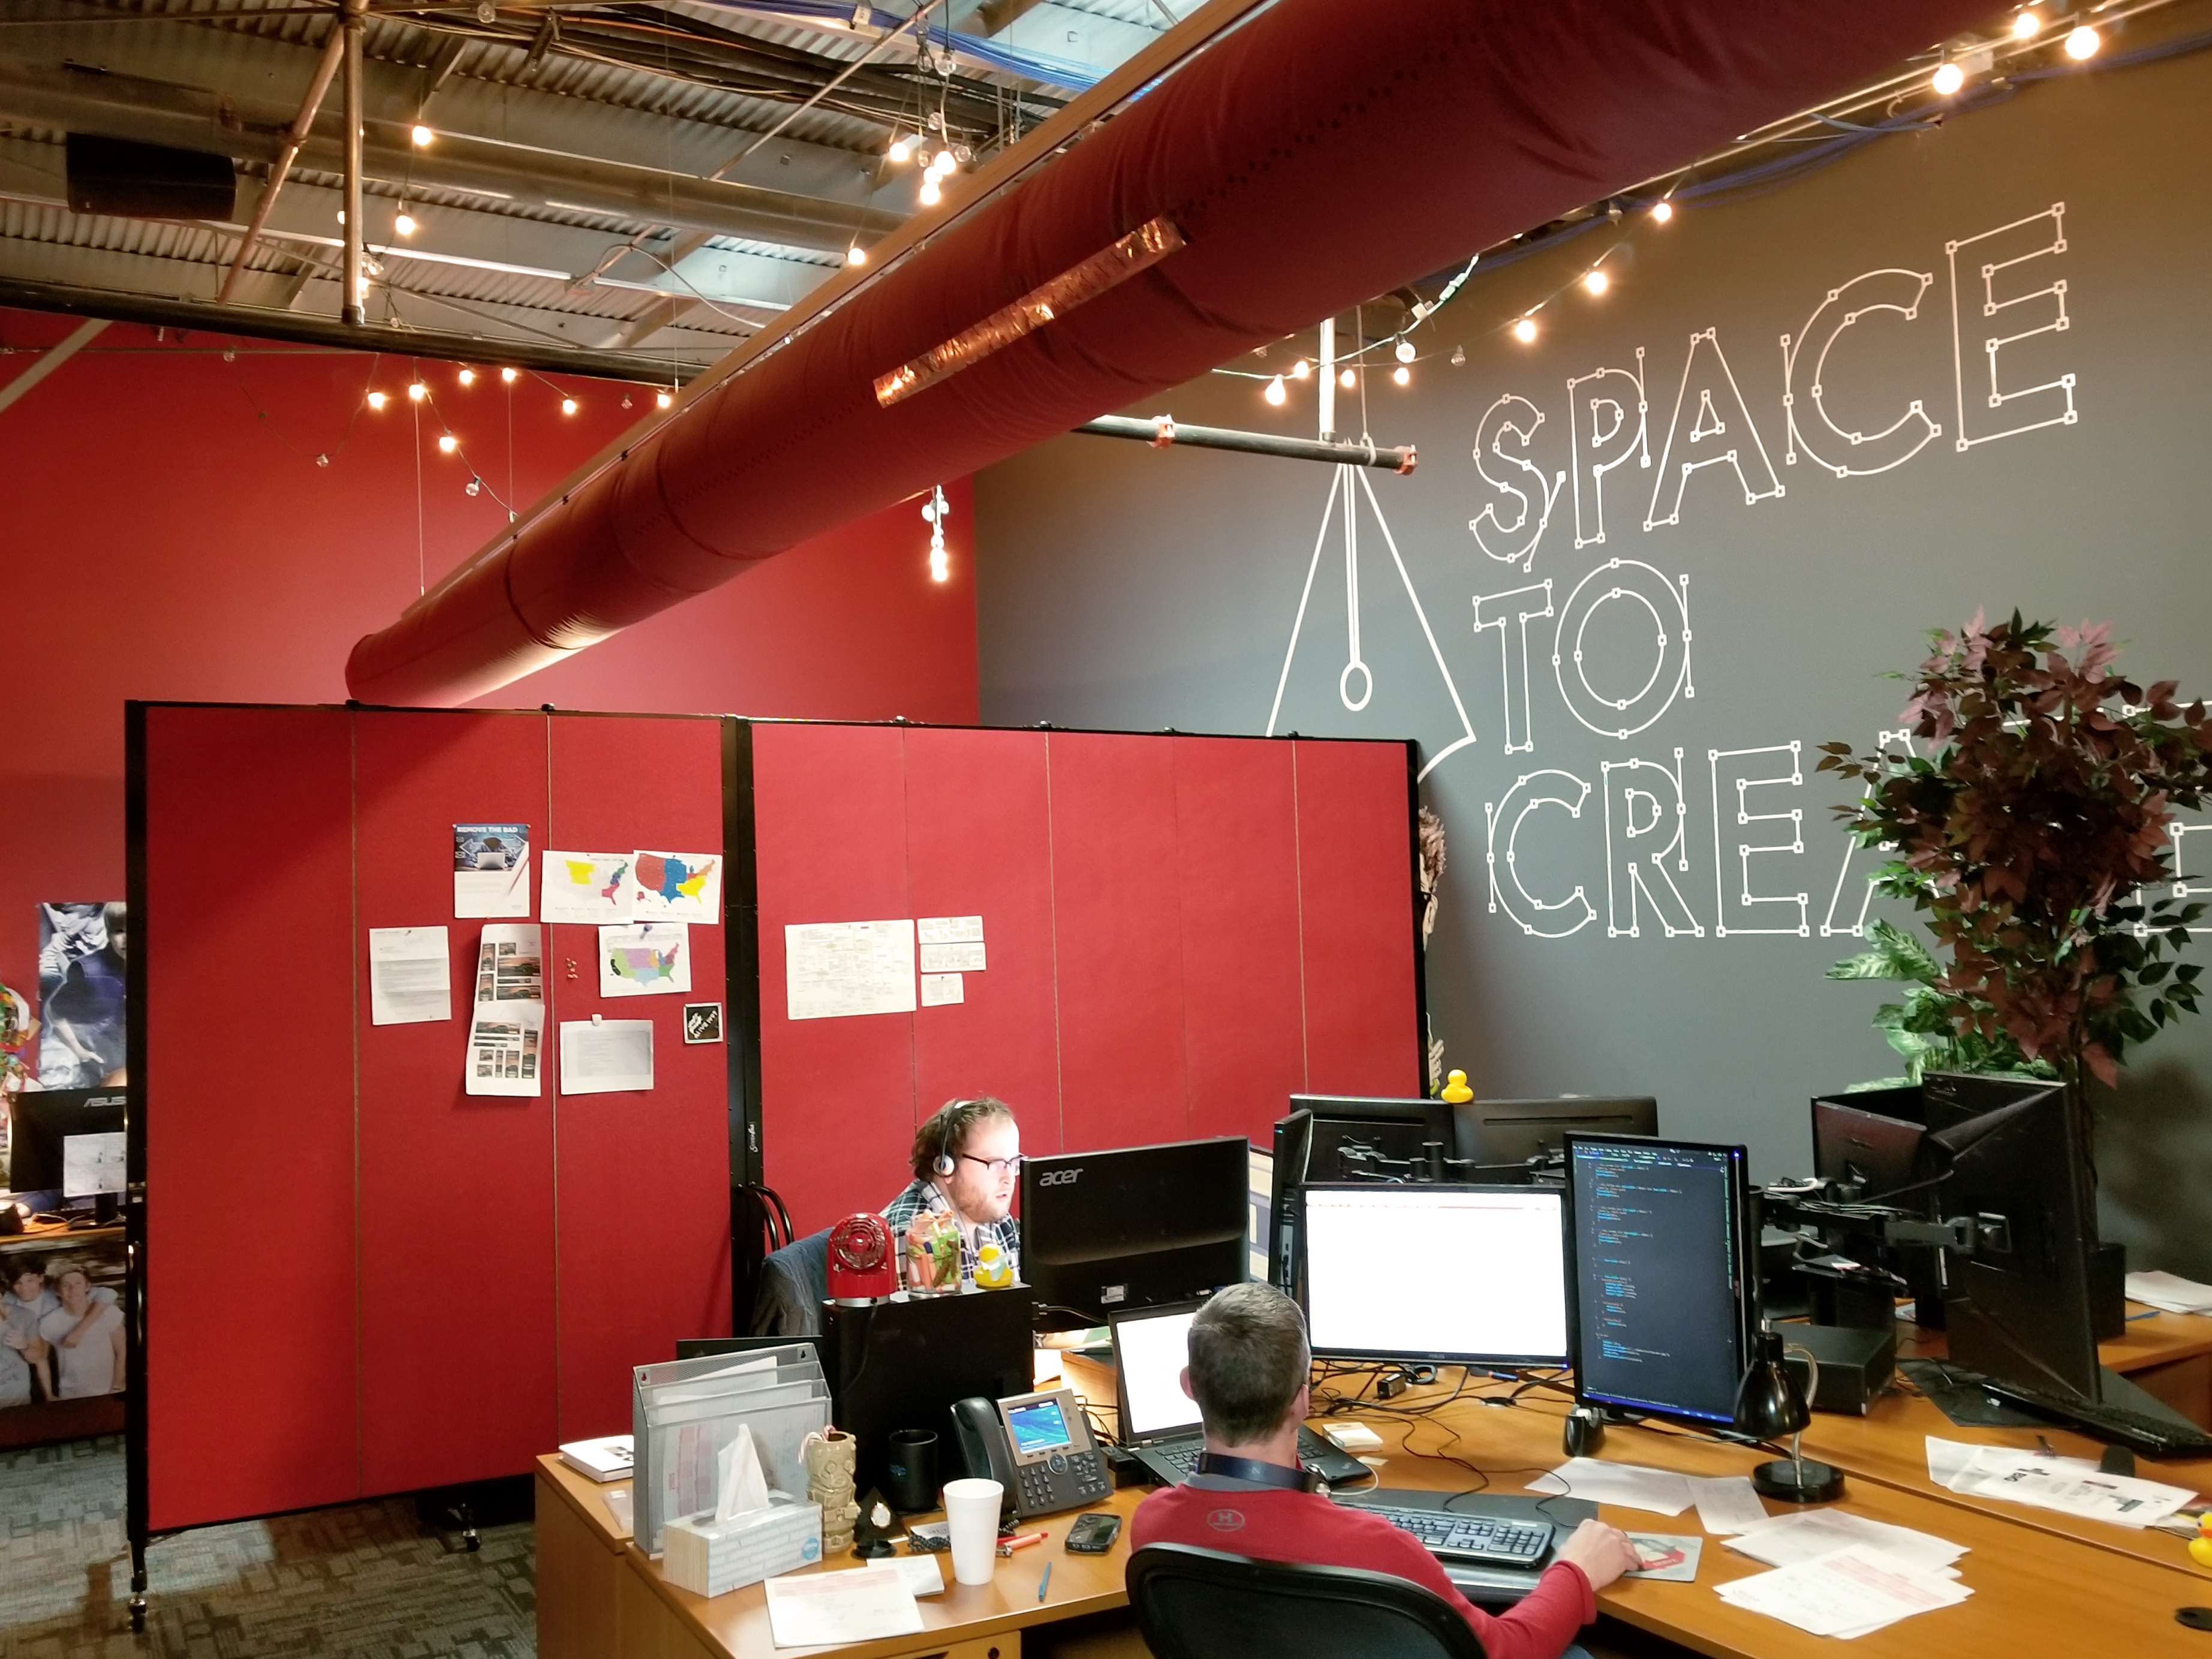 A set of red tackable room dividers separate an office into two rooms